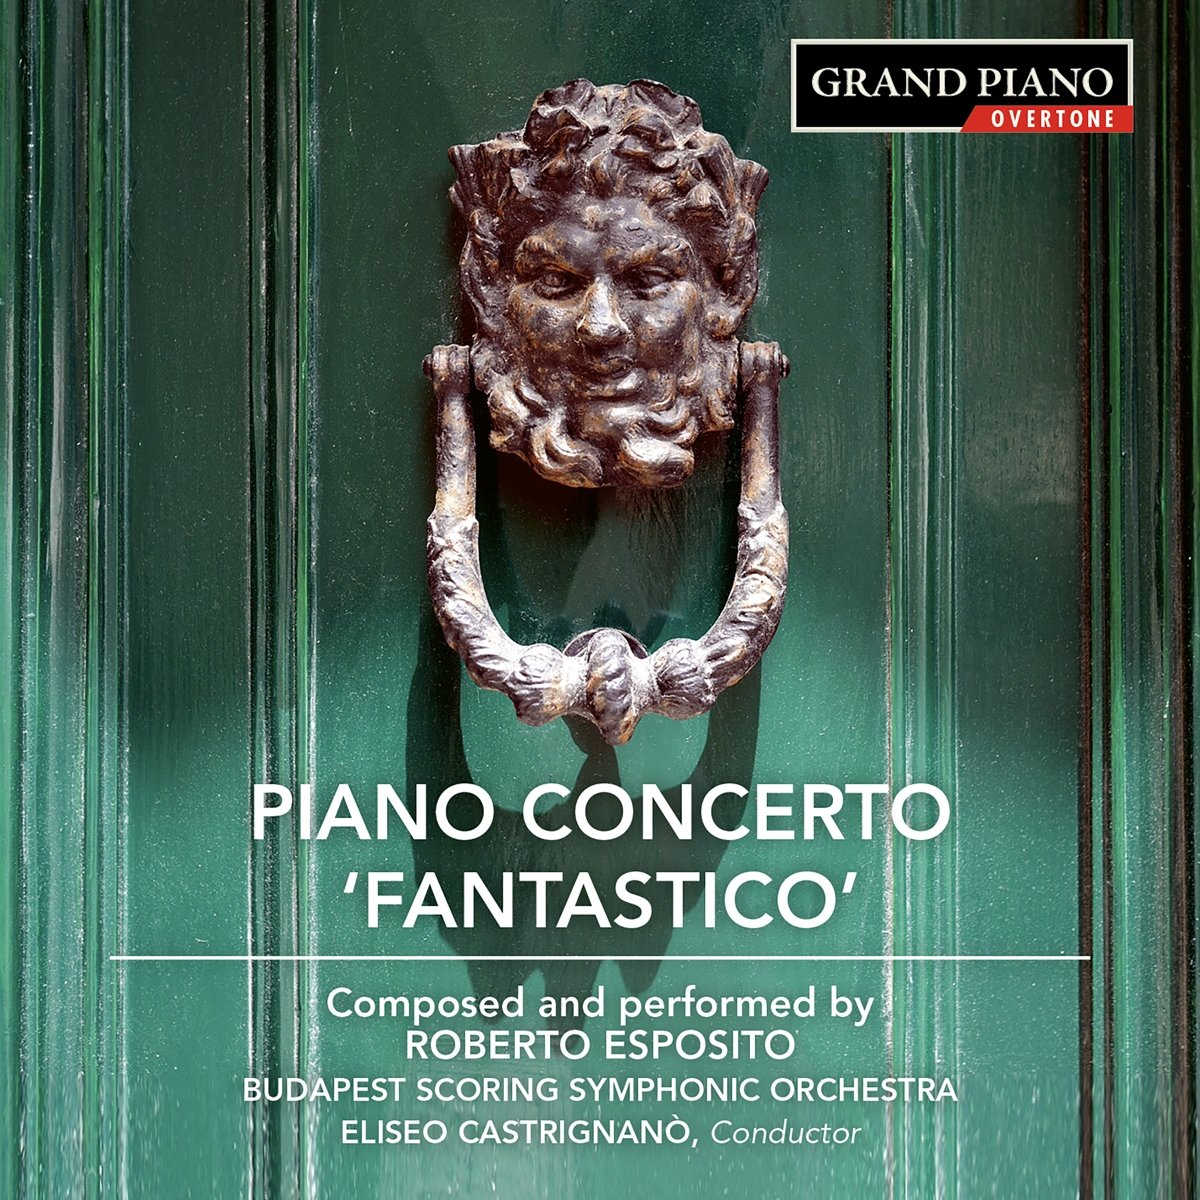 CD : Roberto Esposito - Piano Concerto Fantastico 1 (CD)